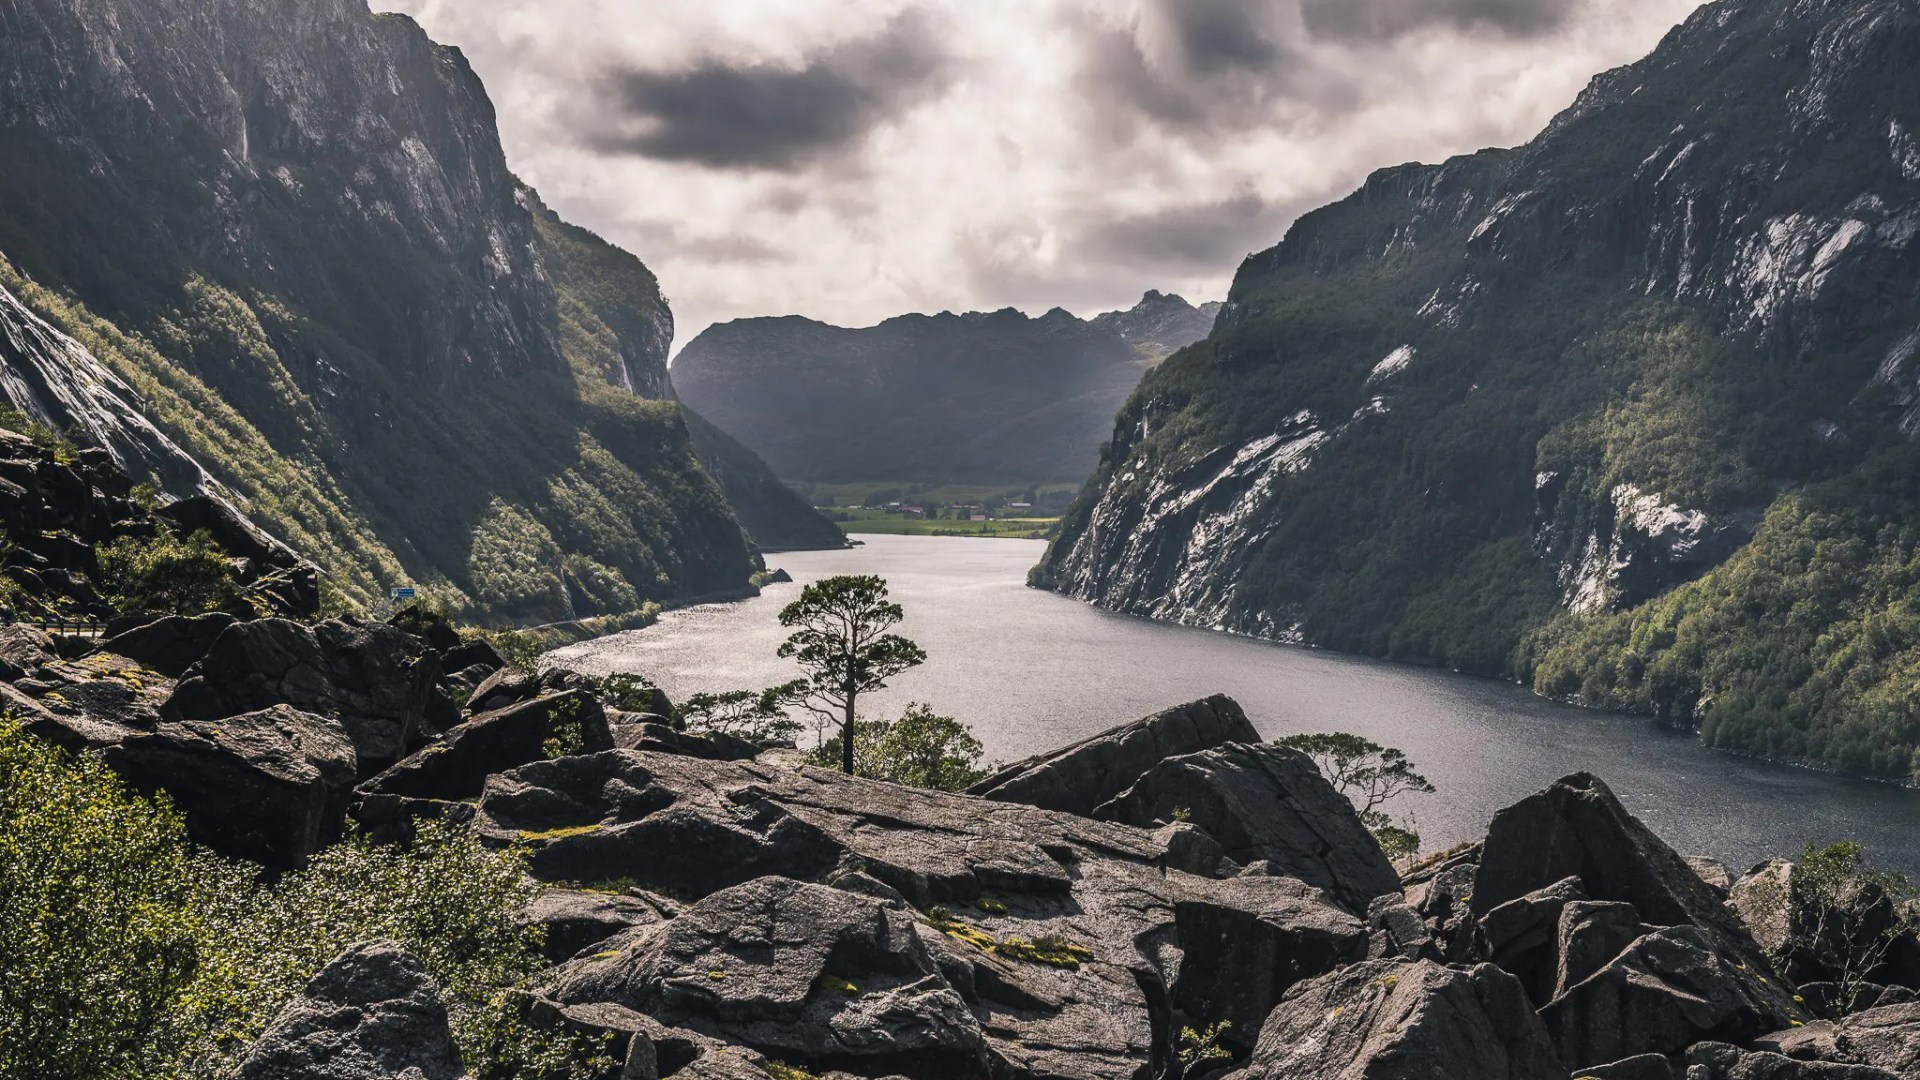 arctic, attraction, aurlandsfjord, aurlandsfjorden, bay, beautiful, beauty, blue, boat, cliff, climate, cloud, clouds, cloudy, coast, coastline, cold, cruise, deep, destination, dusk, europe, extreme, famous, fiords, fjord, fjordane, fjords, fog, forest, frost, frozen, geirangerfjord, glacial, glacier, global, green, gudvangen, hardanger, hill, ice, idyllic, lake, landmark, landscape, lysefjord, majestic, melt, melting, mountain, mountains, naeroyfjord, naeroyfjorden, natural, nature, nordic, north, northern, northland, norway, norwegian, outdoor, outdoors, panorama, panoramic, peak, polar, reflection, rock, scandinavia, scandinavian, scene, scenery, scenic, scenics, sea, sky, snow, snow-capped, sogn og fjordane, sognefjord, sognefjorden, svalbard, tour, tourism, travel, unesco, vacation, view, viking, village, vista, water, waterfall, white, wilderness, winter